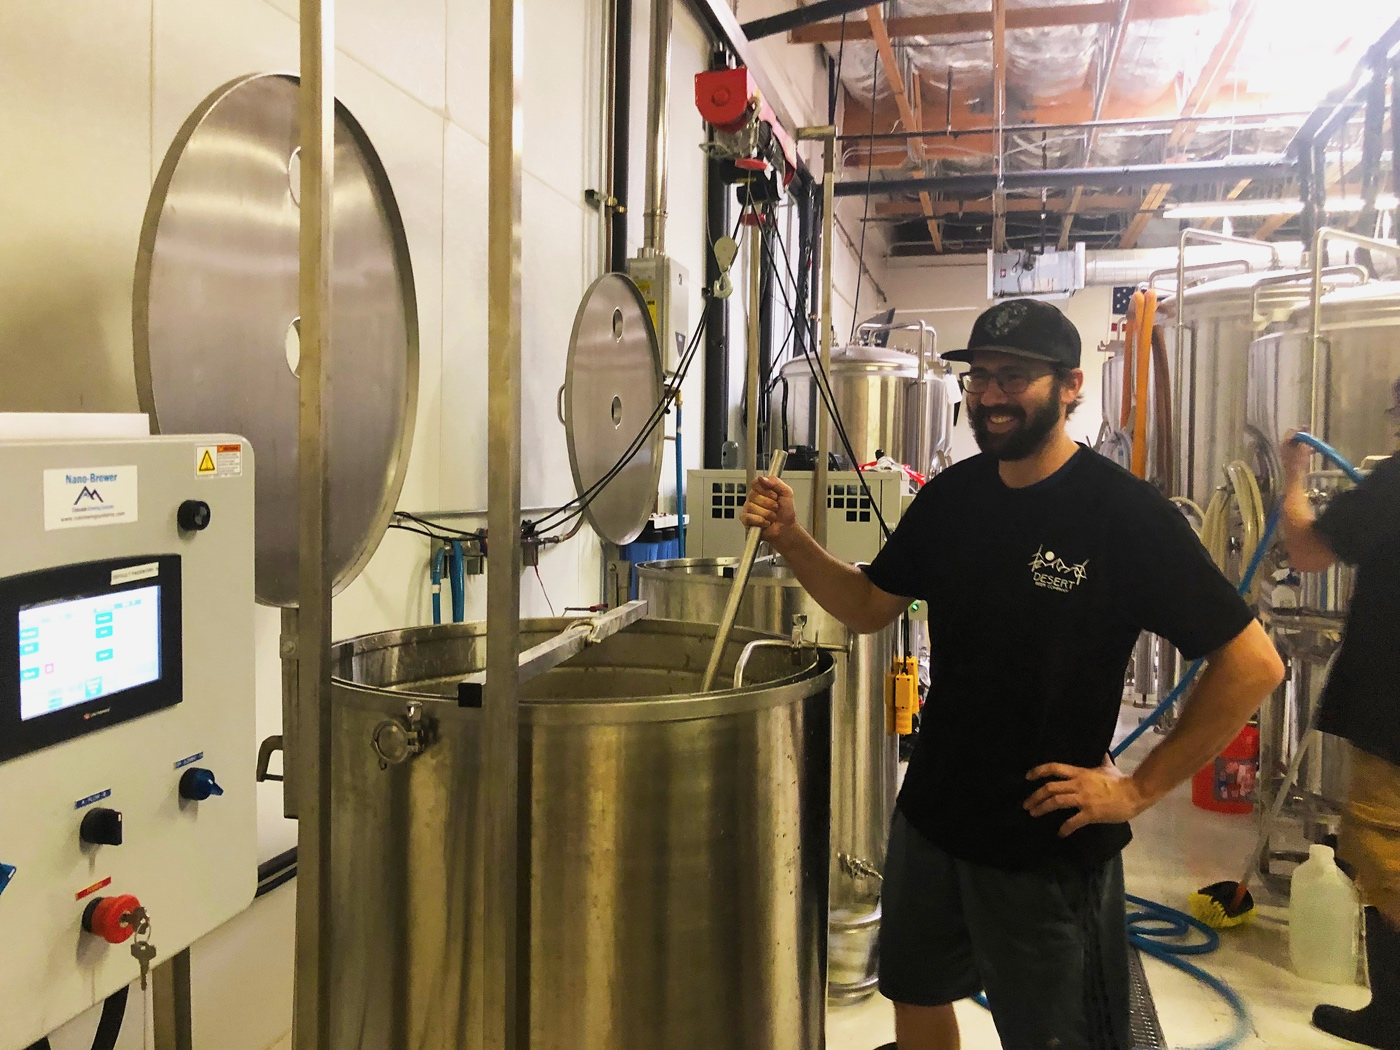 Mashing in on new brews for opening parties!